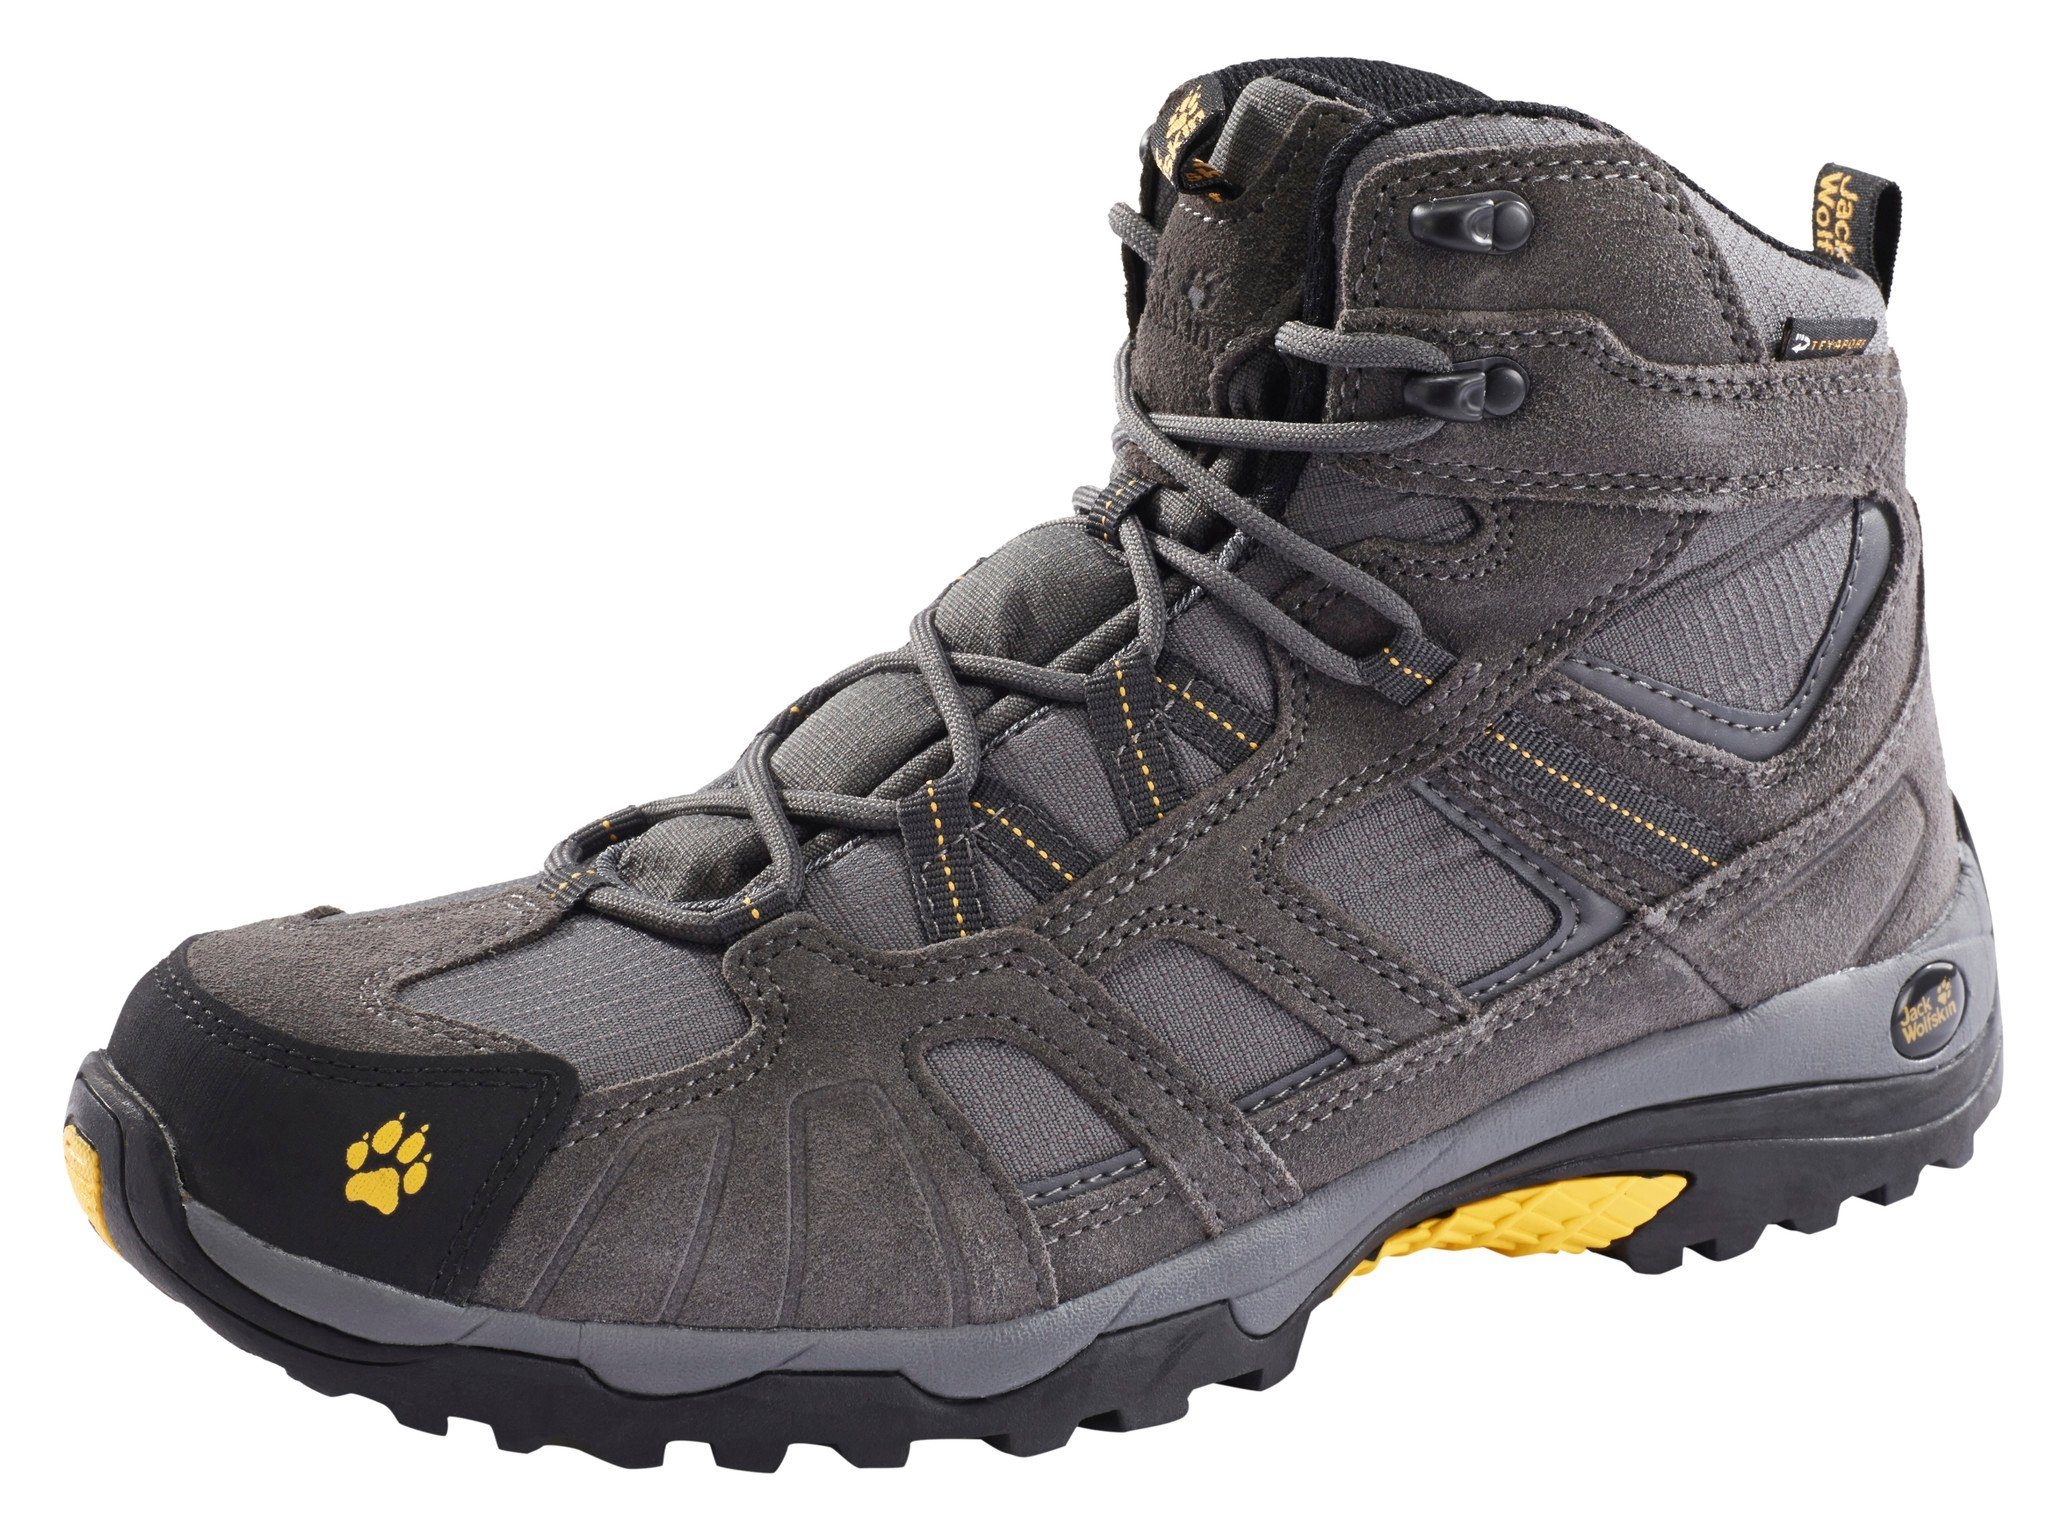 Jack Wolfskin Kletterschuh »Vojo Hike Texapore Hiking Shoes Mid Cut Men«